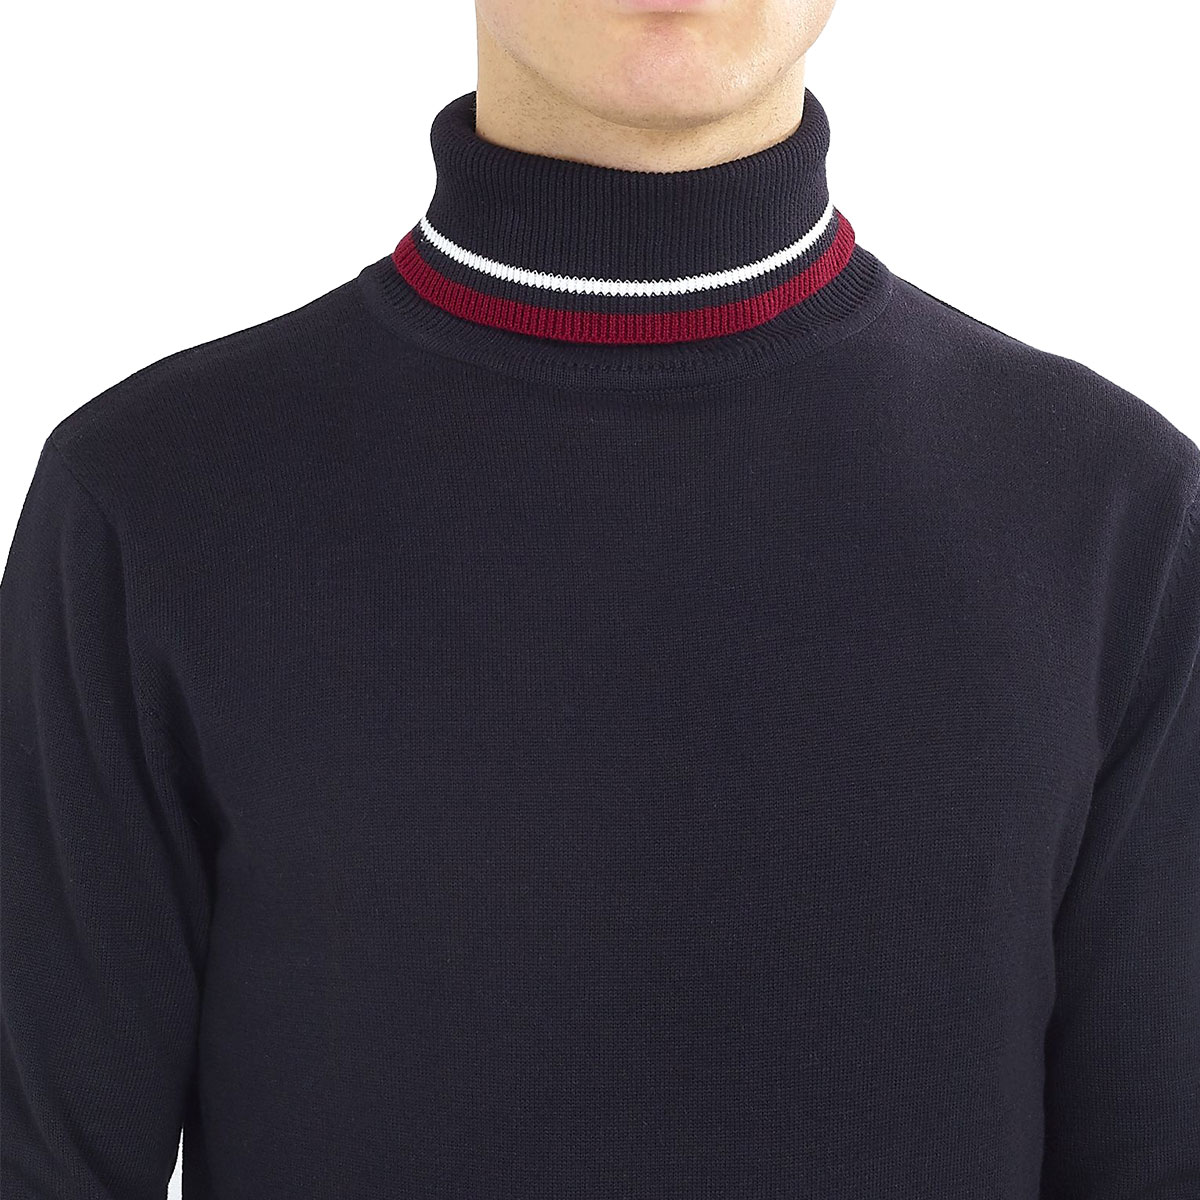 Brave-Soul-Mens-Turtle-Neck-Jumper-Contrast-Tipped-Hallis thumbnail 13